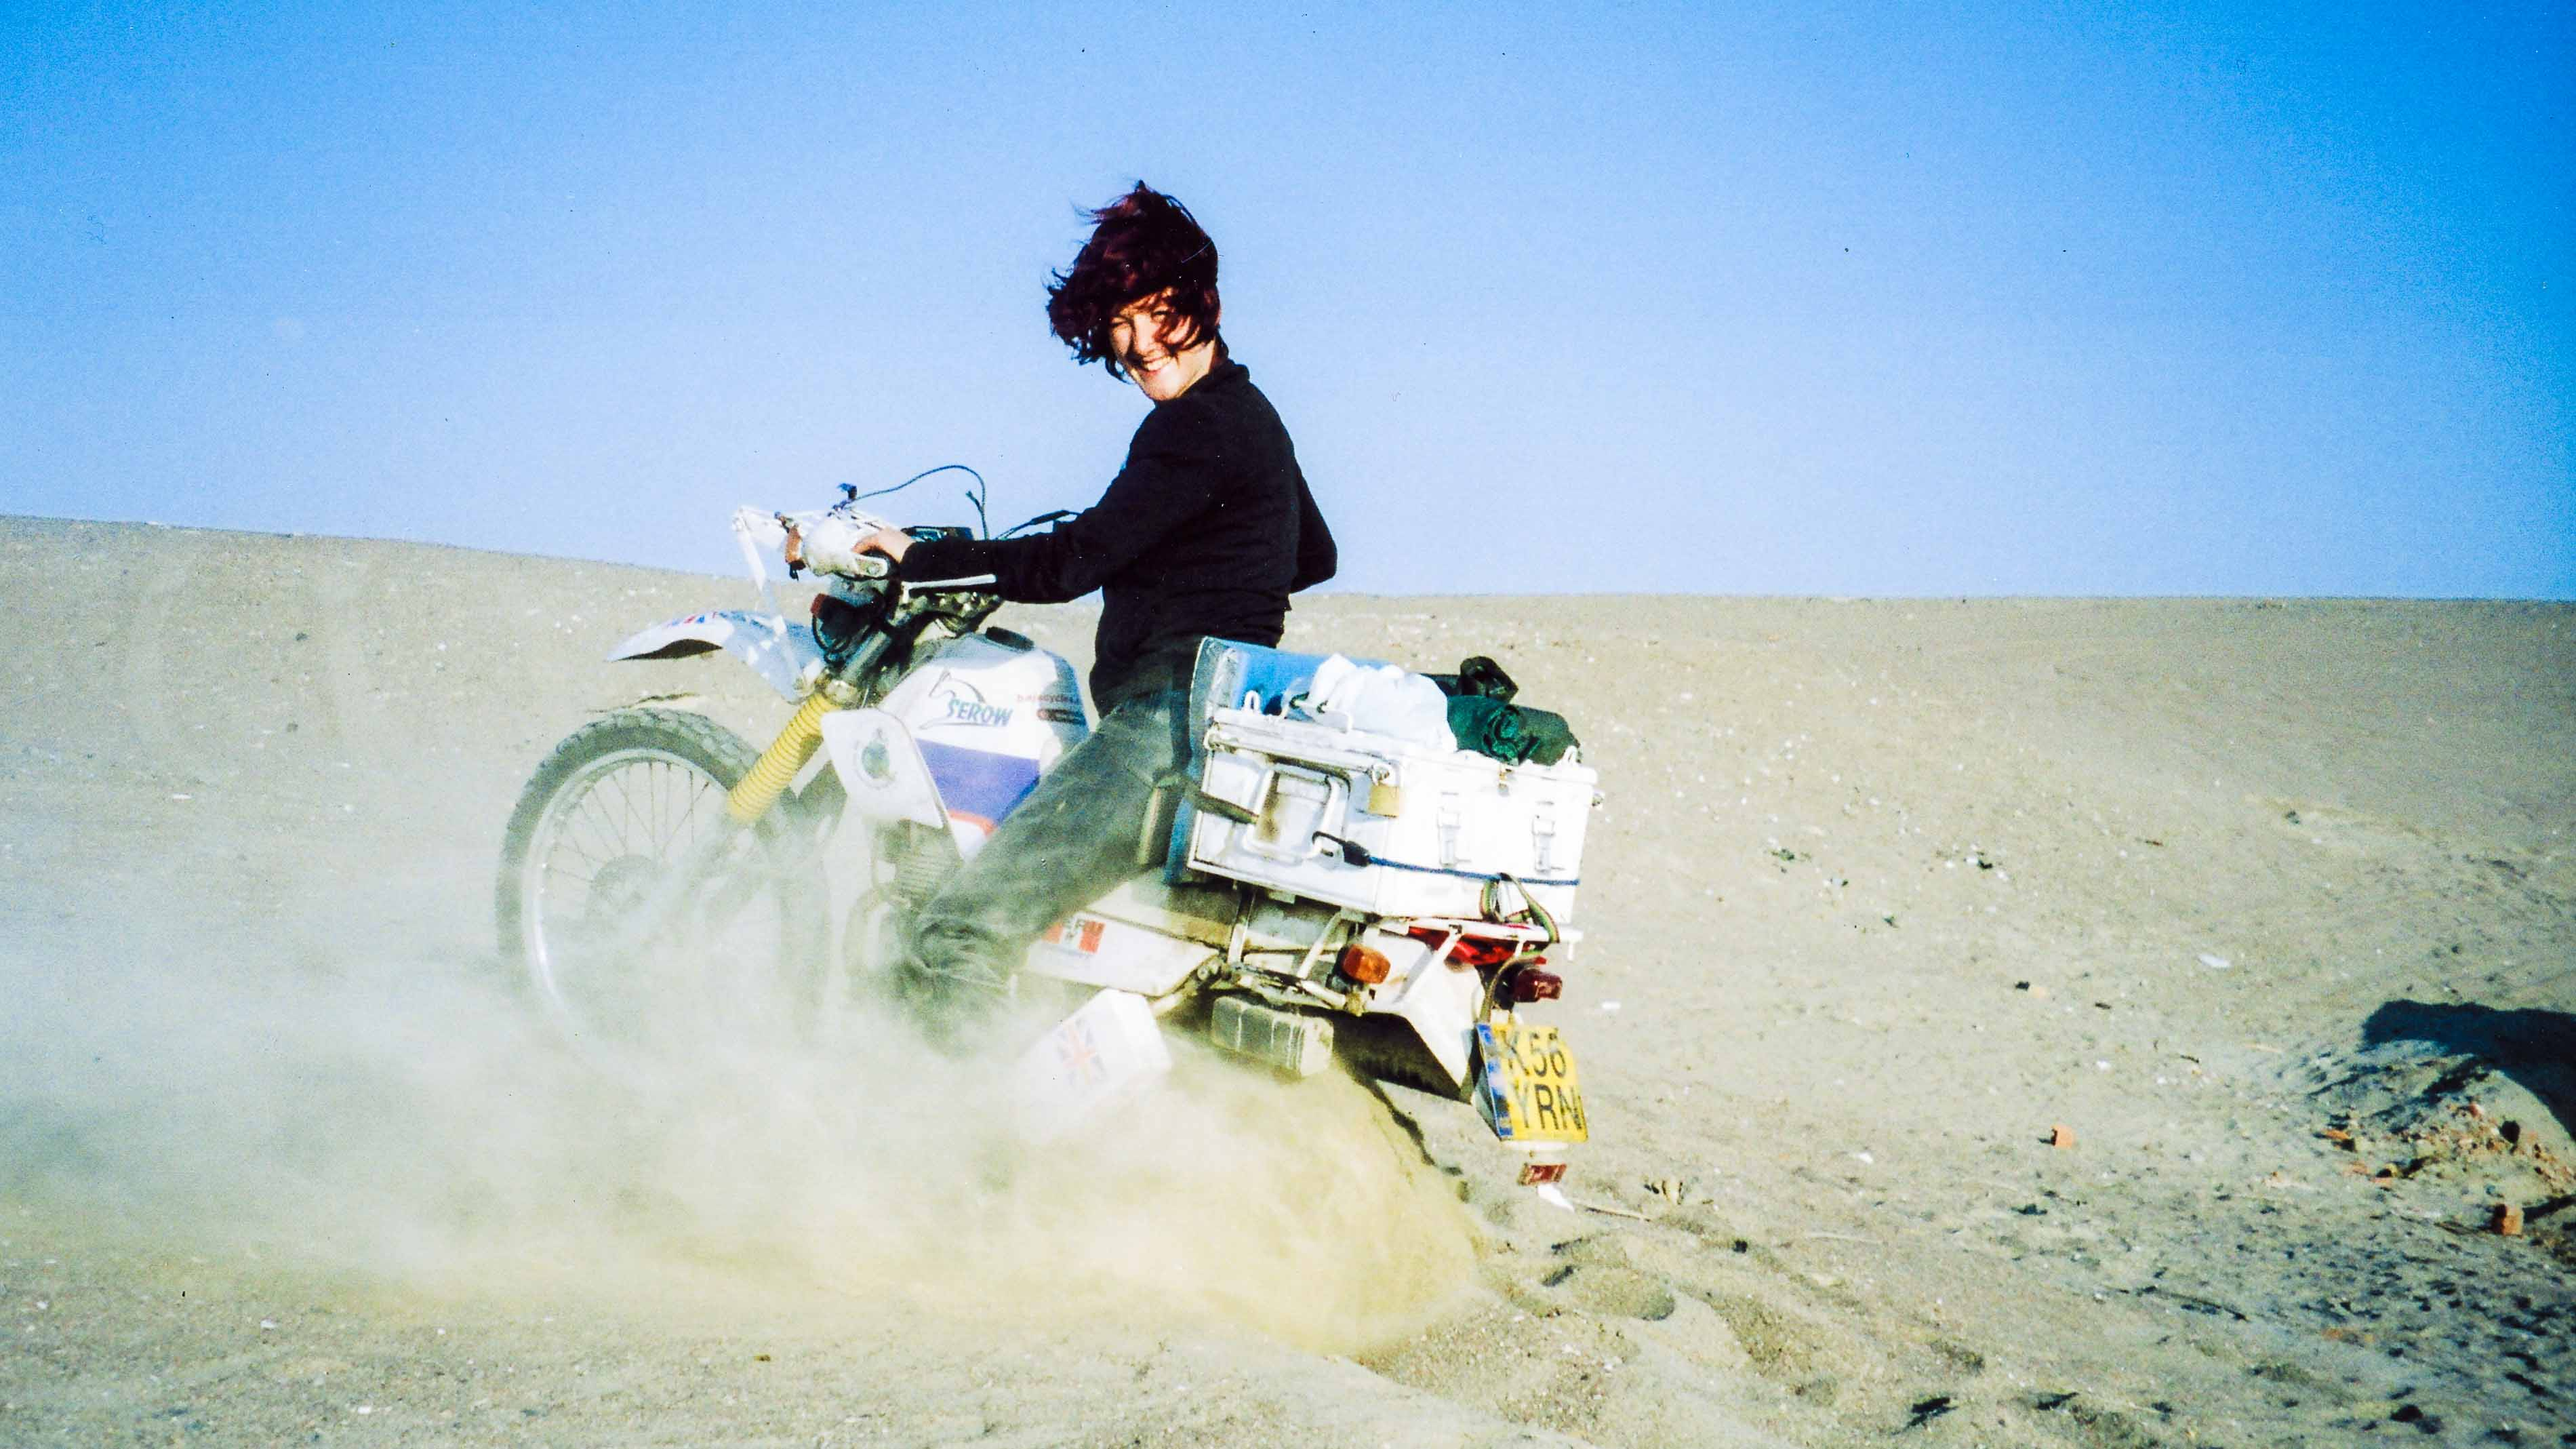 Riding solo: One woman's motorcycling adventures in Iran ...